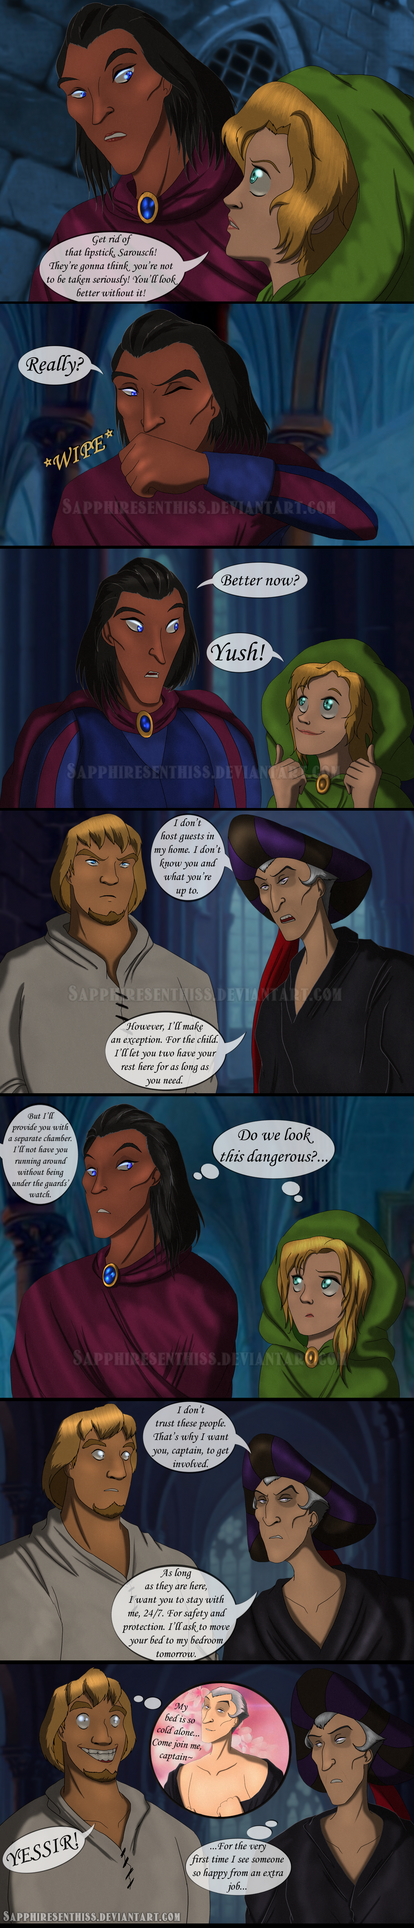 Never Judge A Gypsy By His Skin - PAGE 16 by Sapphiresenthiss